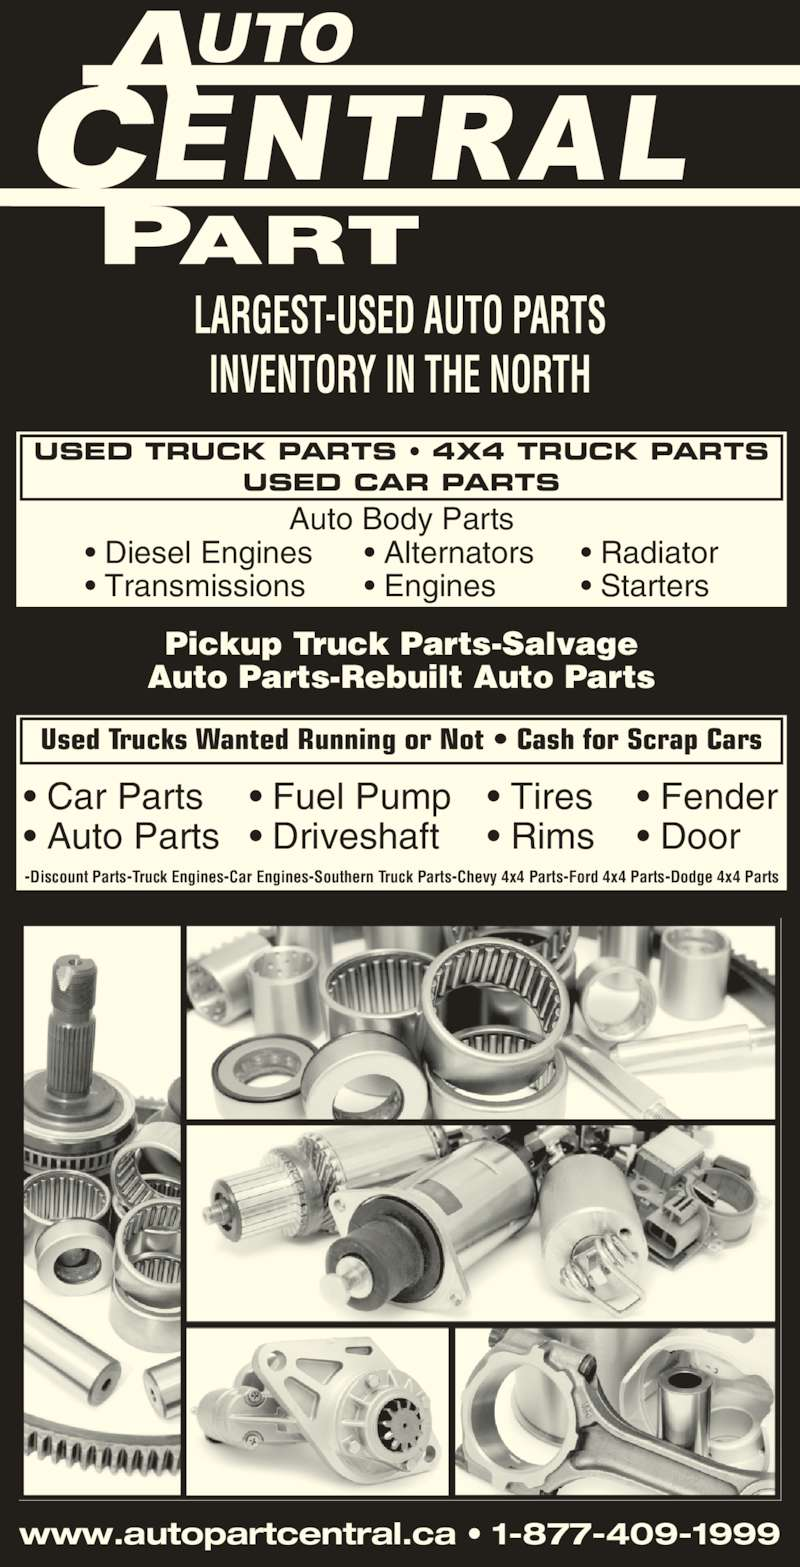 Auto Part Central (705-474-7130) - Display Ad - LARGEST-USED AUTO PARTS INVENTORY IN THE NORTH www.autopartcentral.ca • 1-877-409-1999 Pickup Truck Parts-Salvage Auto Parts-Rebuilt Auto Parts -Discount Parts-Truck Engines-Car Engines-Southern Truck Parts-Chevy 4x4 Parts-Ford 4x4 Parts-Dodge 4x4 Parts USED TRUCK PARTS • 4X4 TRUCK PARTS USED CAR PARTS Used Trucks Wanted Running or Not • Cash for Scrap Cars Auto Body Parts • Diesel Engines • Transmissions • Alternators • Engines • Radiator • Starters • Car Parts • Auto Parts • Tires • Rims • Fuel Pump • Driveshaft • Fender • Door